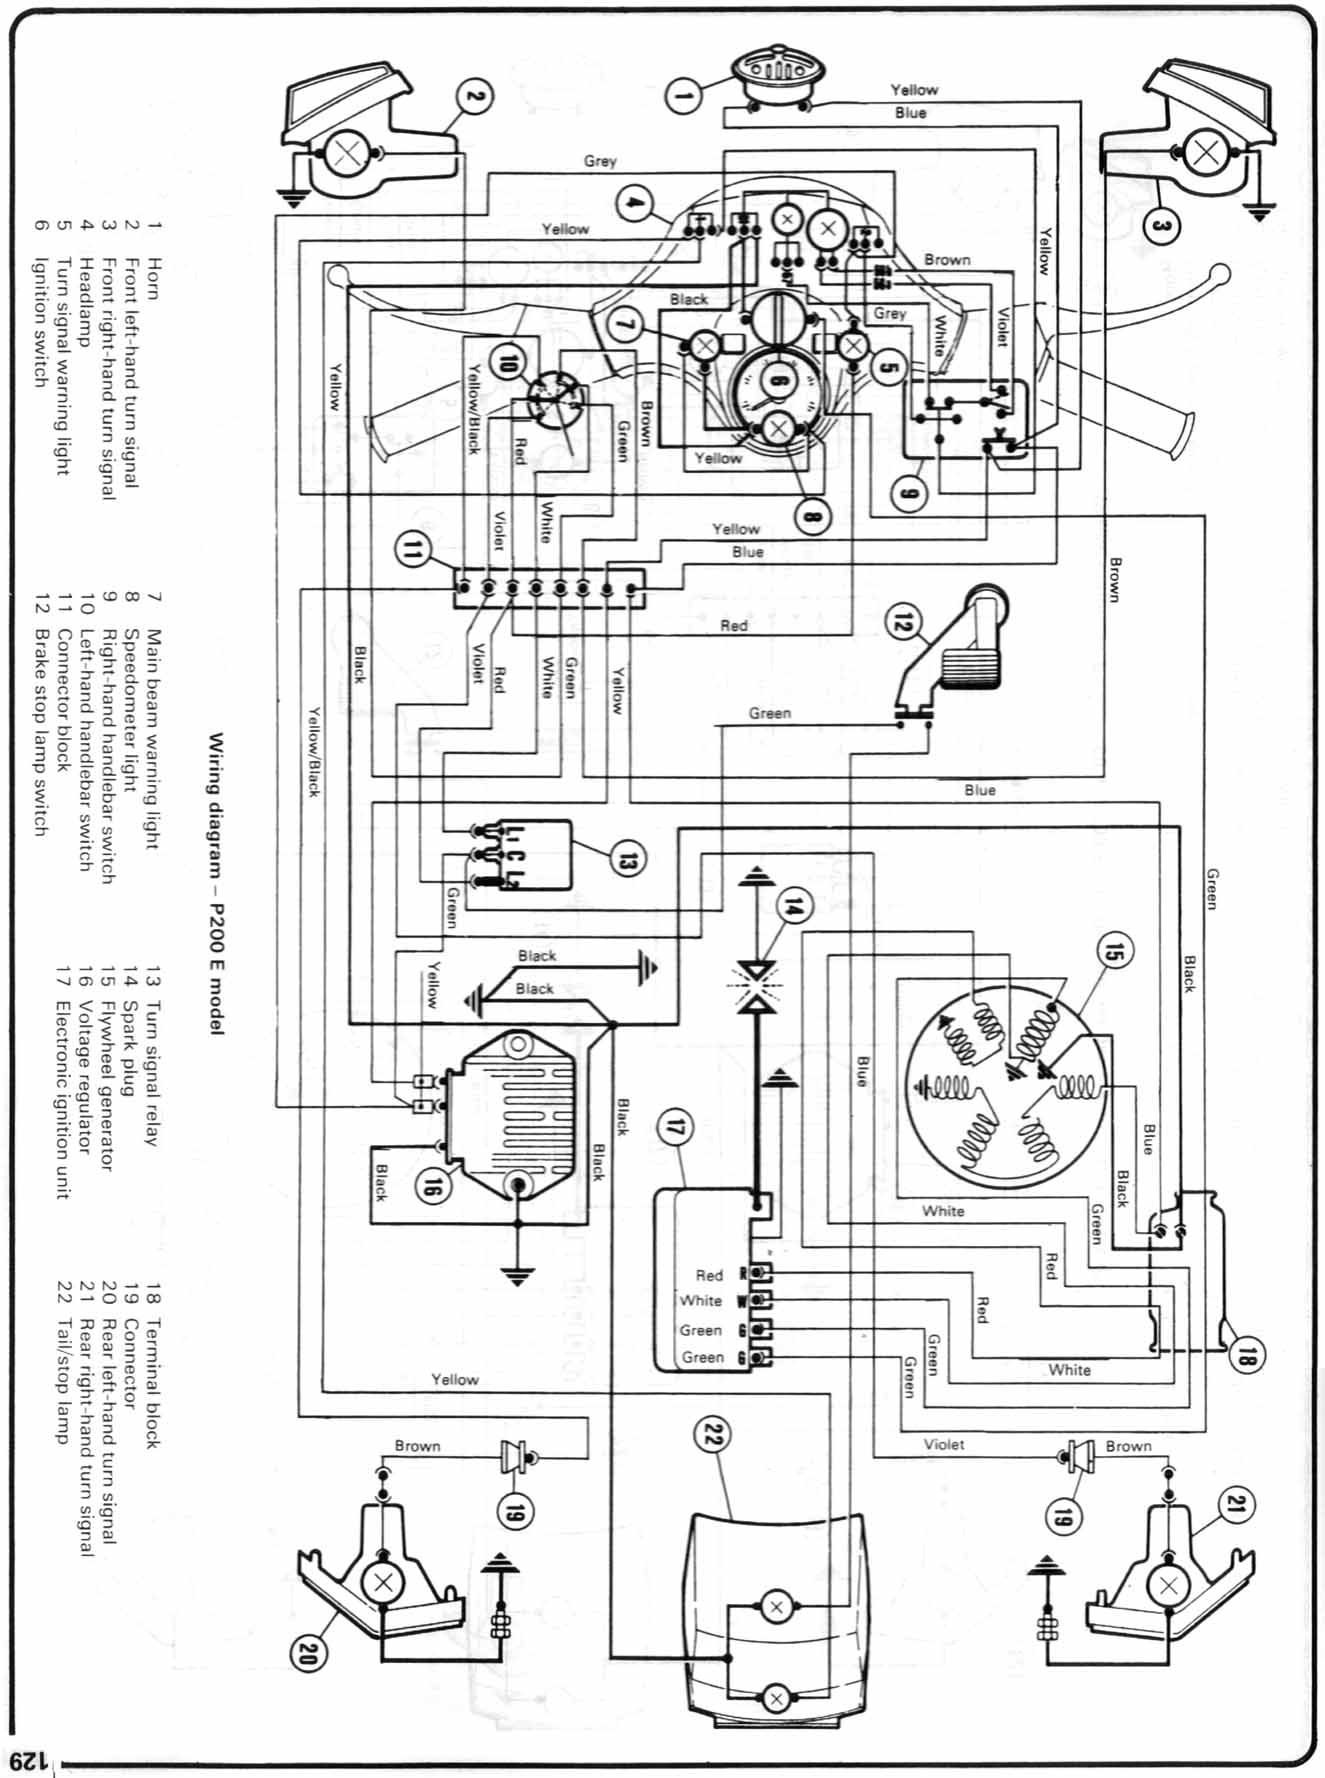 Handlebar Wiring Diagrams General Diagram Furthermore 3 Way Switch With 2 Lights Library Rh 7 Codingcommunity De